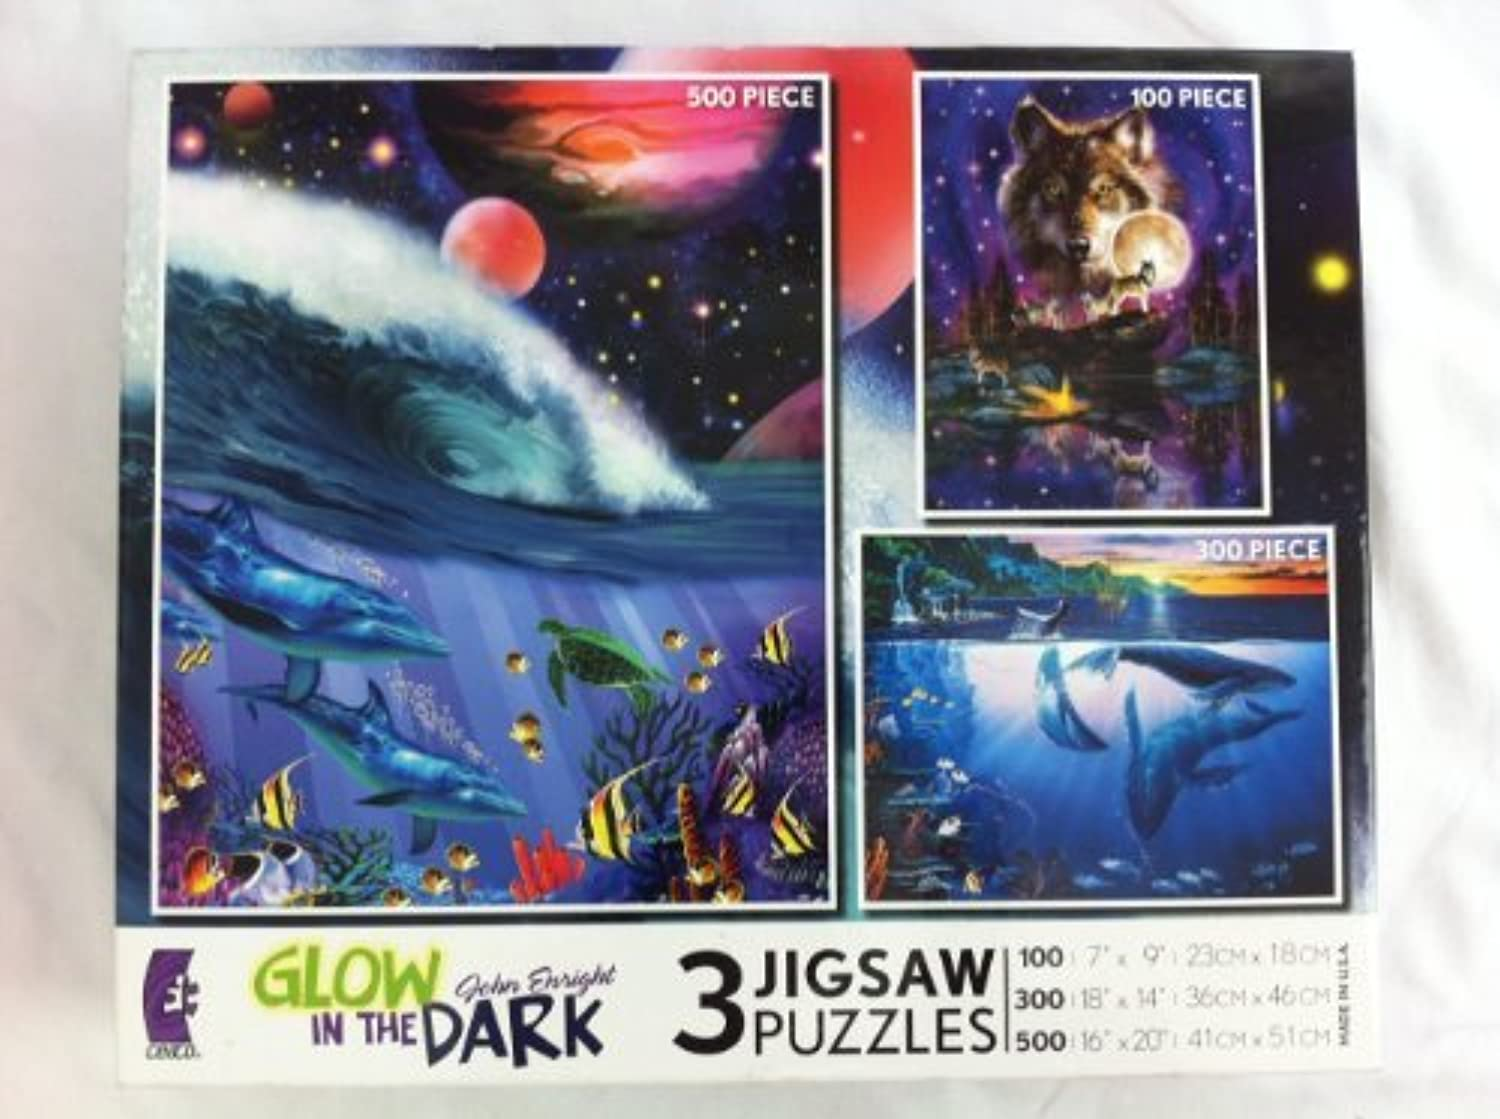 John Enright Glow in the Dark 3 Jigsaw Puzzles by Ceaco by Ceaco